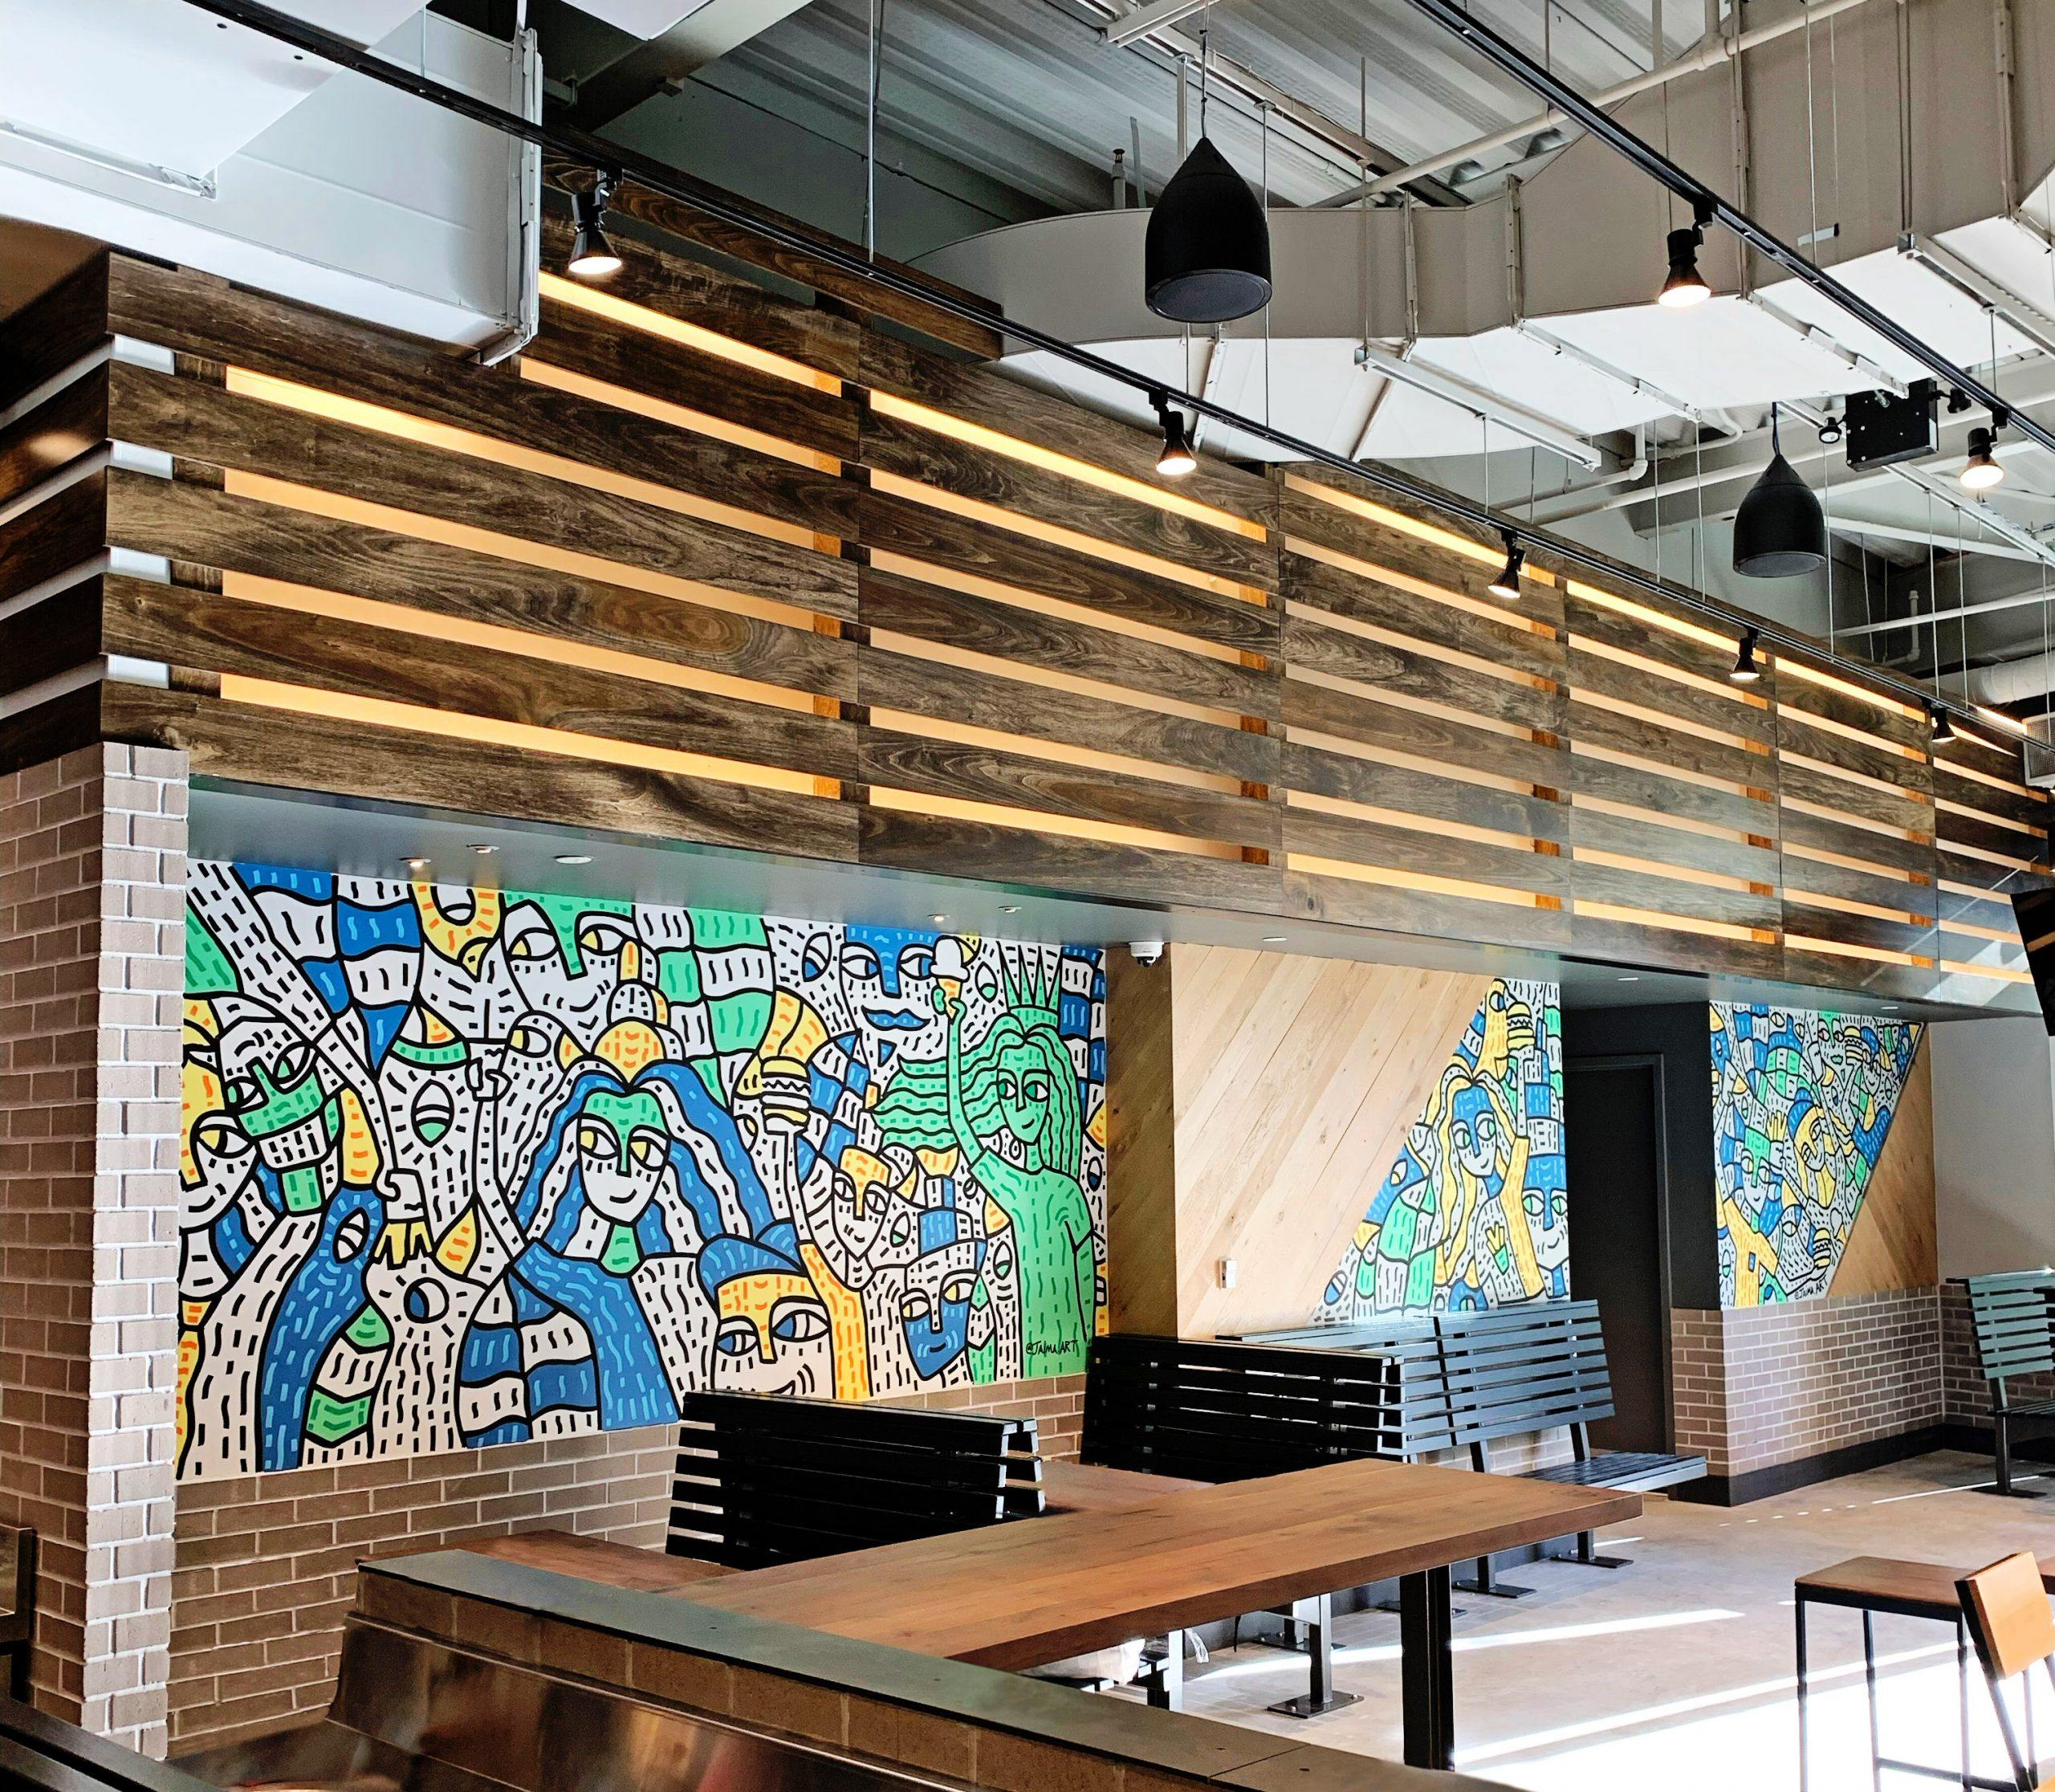 Shake Shack Empire Outlets Mural by Jaima